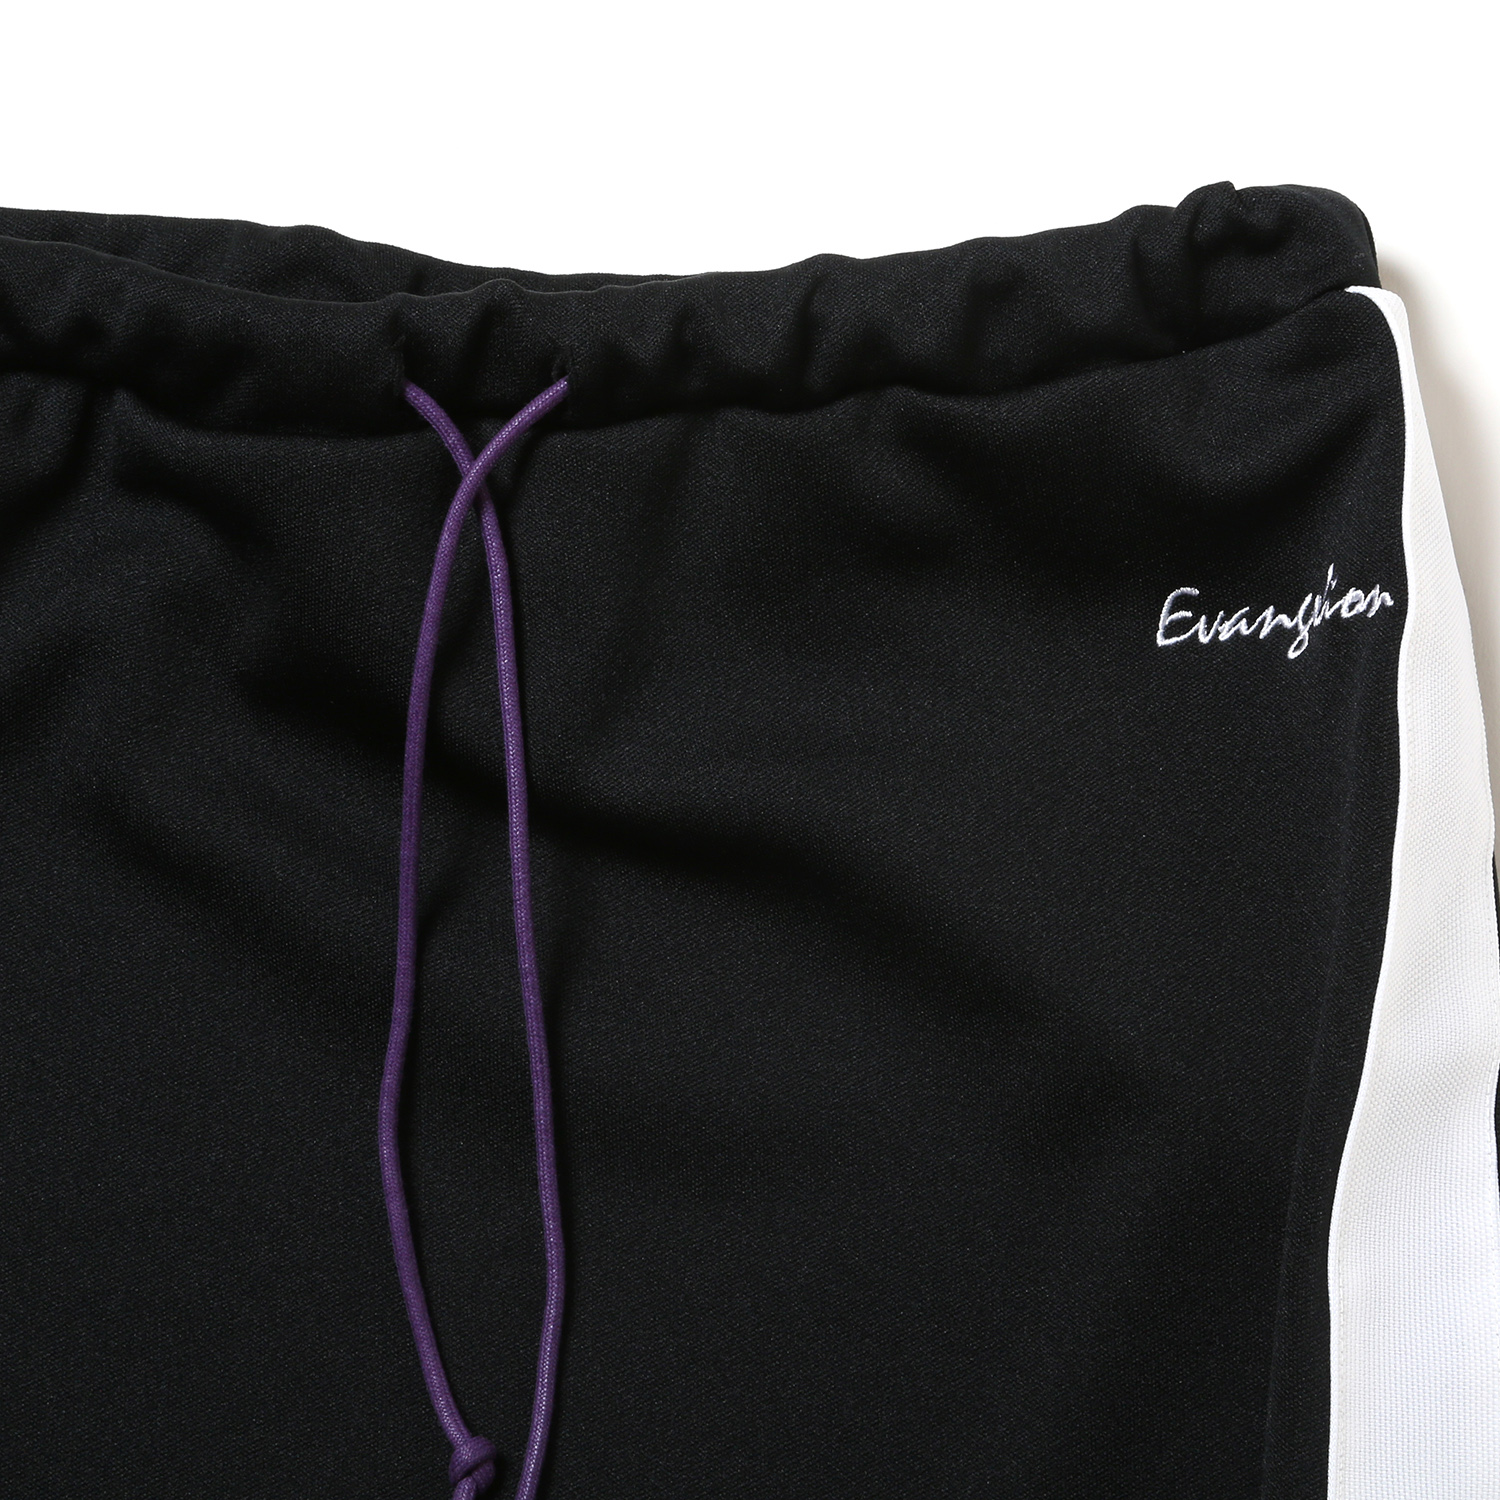 EVANGELION LINE TIGHT SKIRT (ブラック)